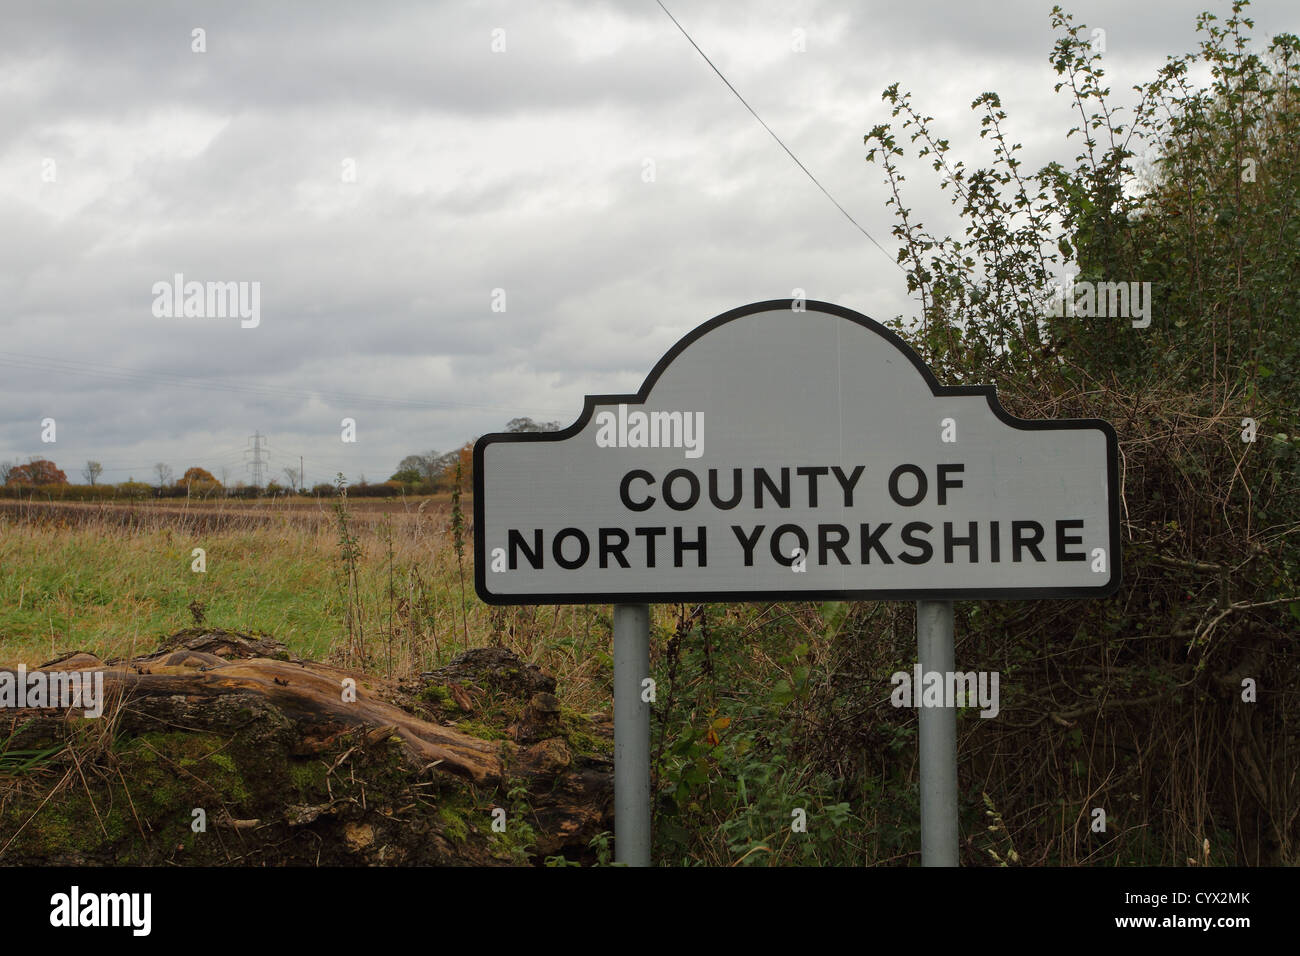 county of north yorkshire boundary sign - Stock Image